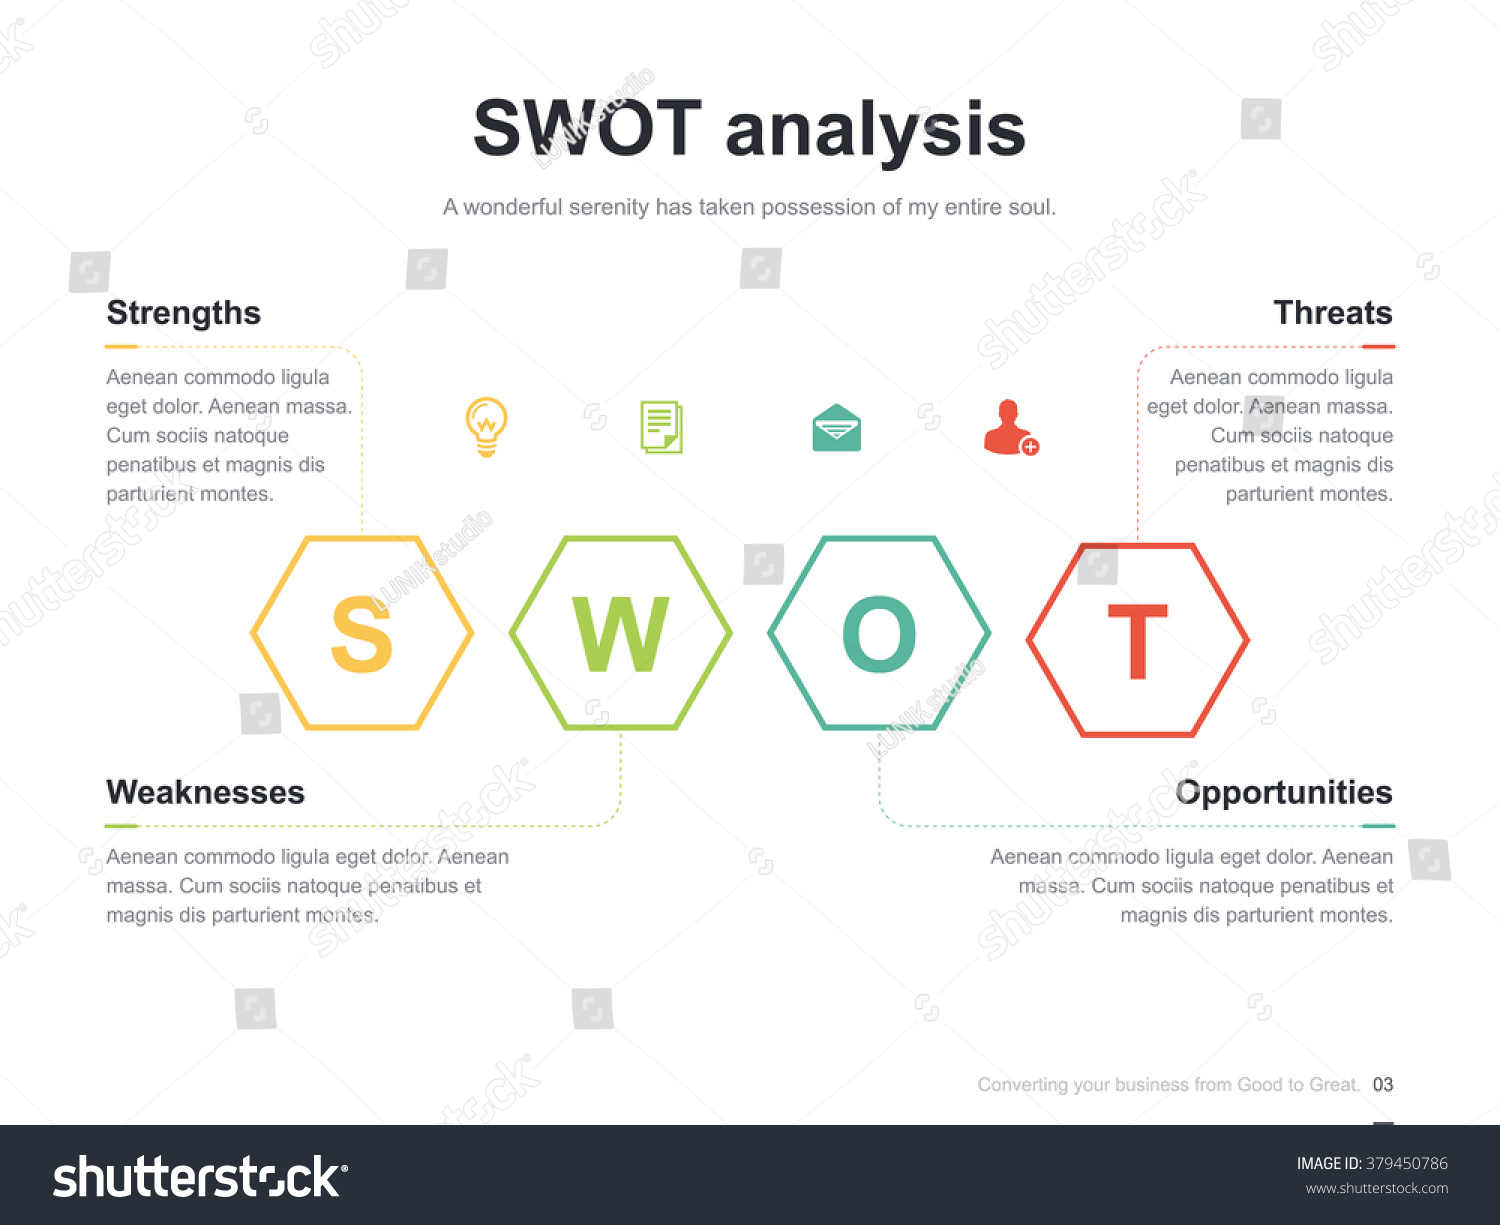 swot analysis of telecom company The saudi telecom company - swot analysis company profile is the essential source for top-level company data and information saudi telecom company - swot anal.